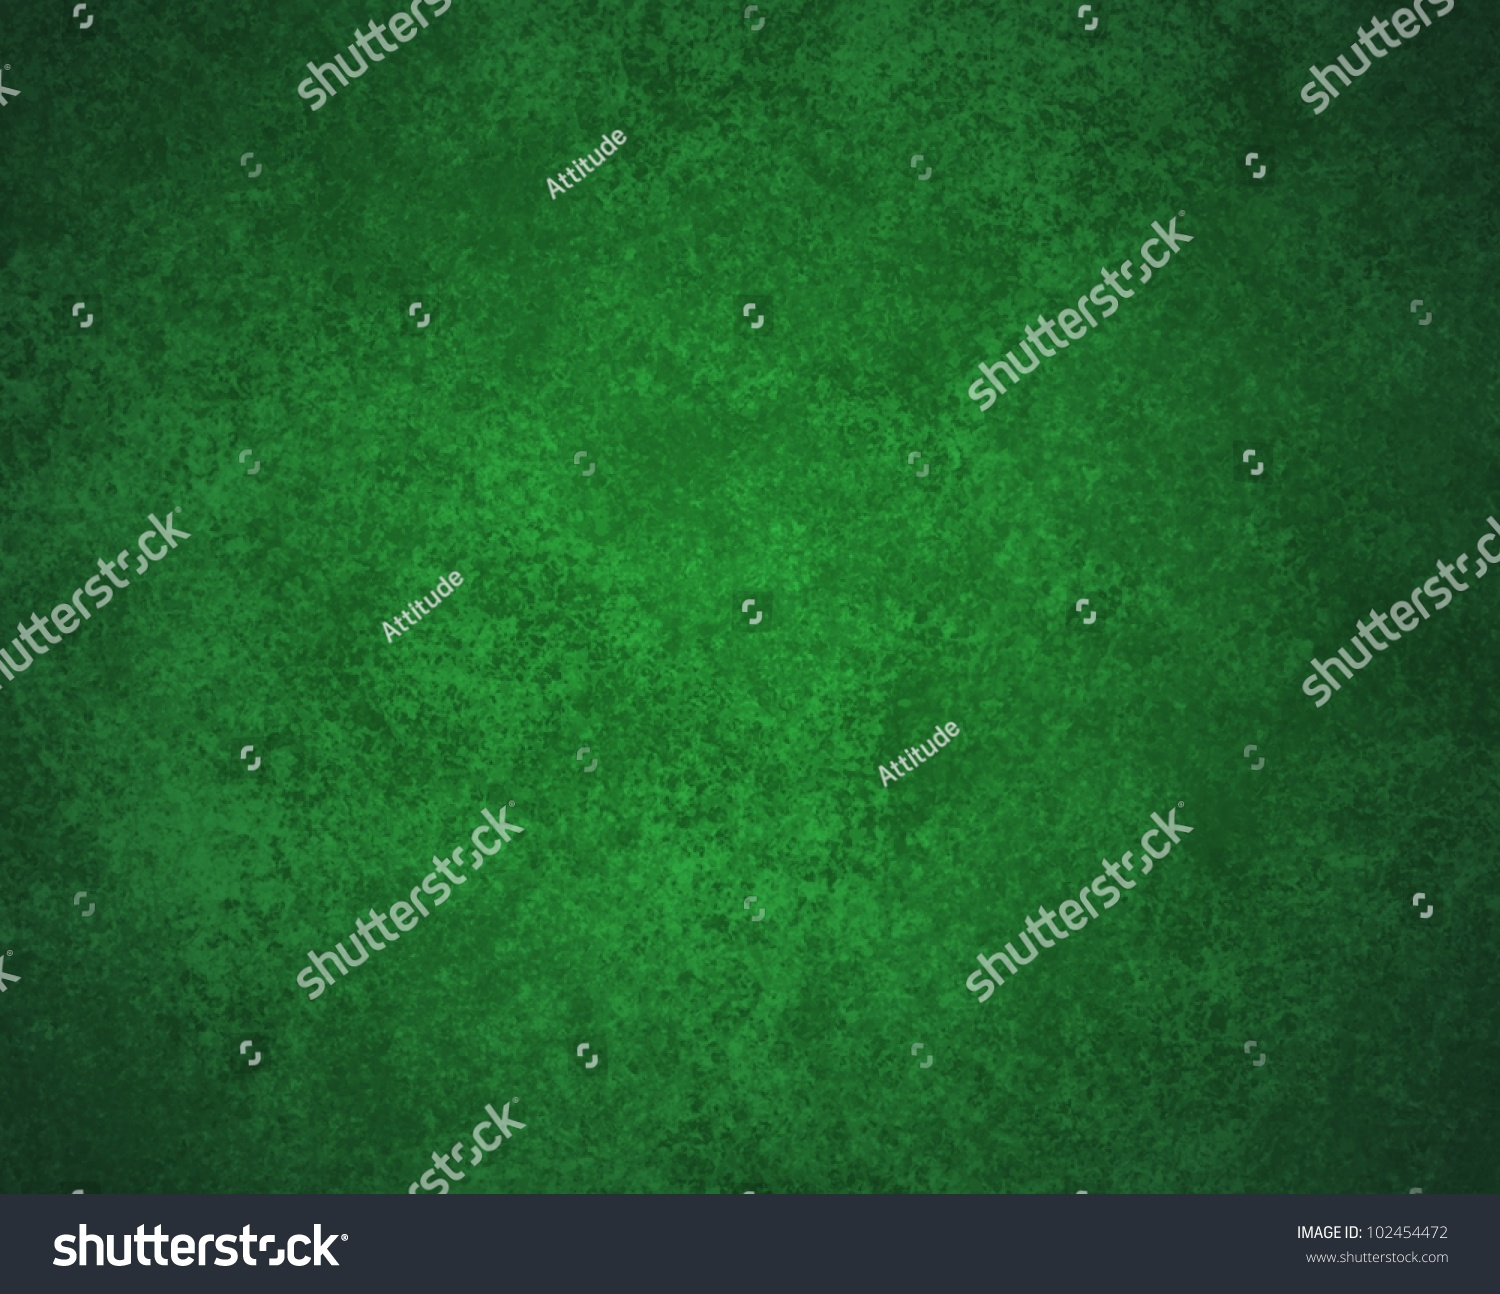 Background image design - Beautiful Green Background Illustration Design With Elegant Dark Green Vintage Grunge Background Abstract Texture On Black